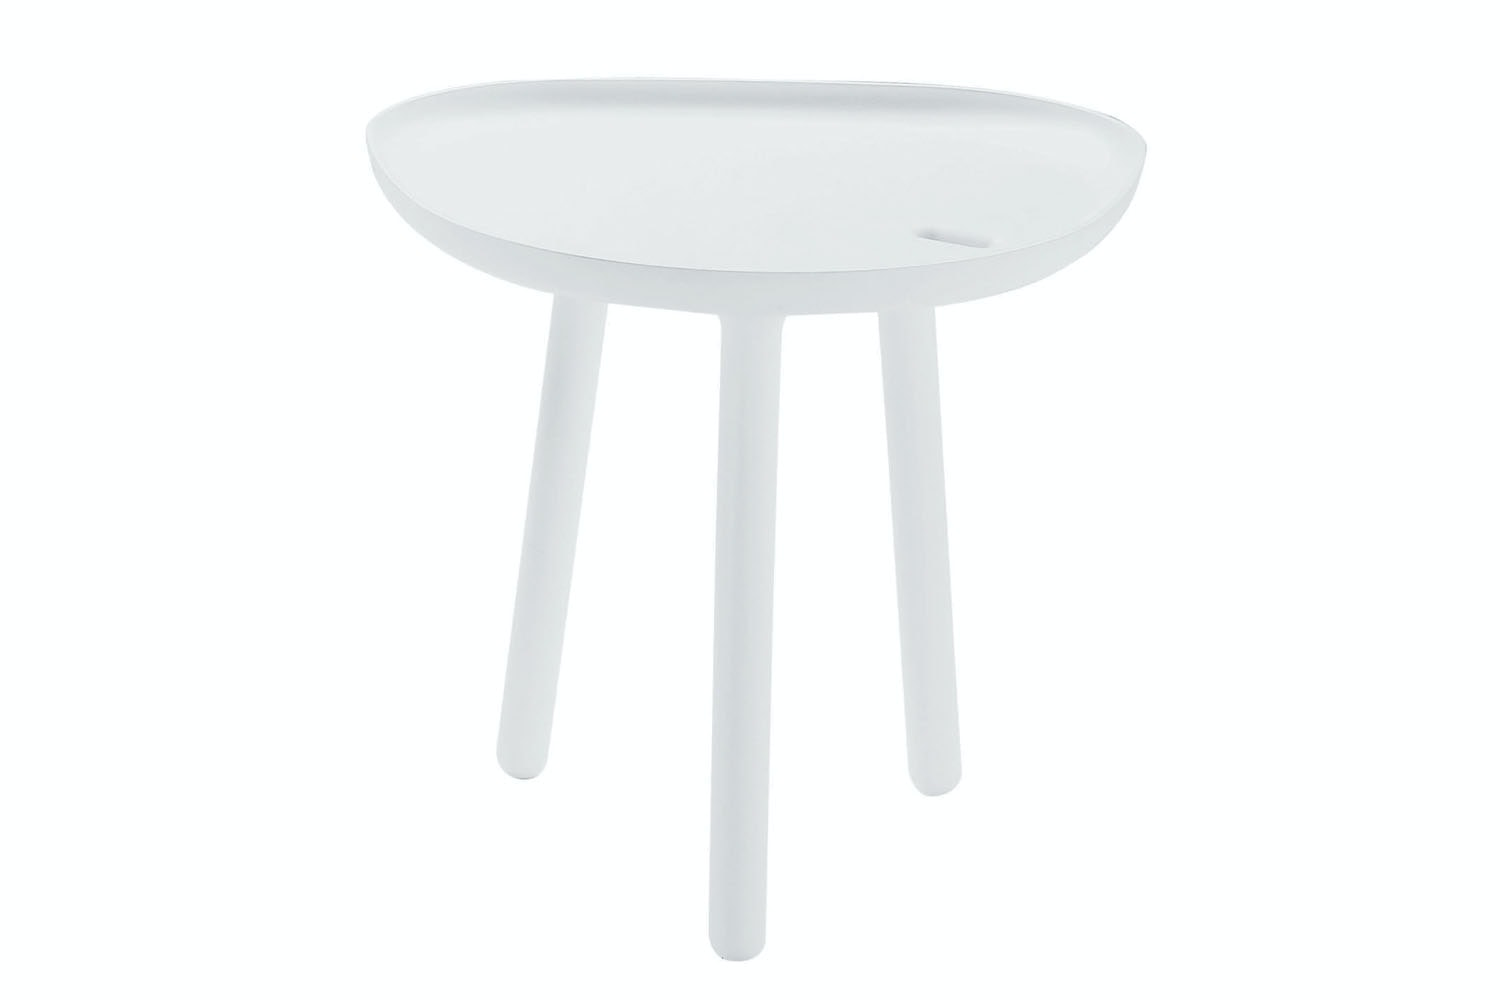 Loto Side Table by Ludovica & Roberto Palomba for Zanotta